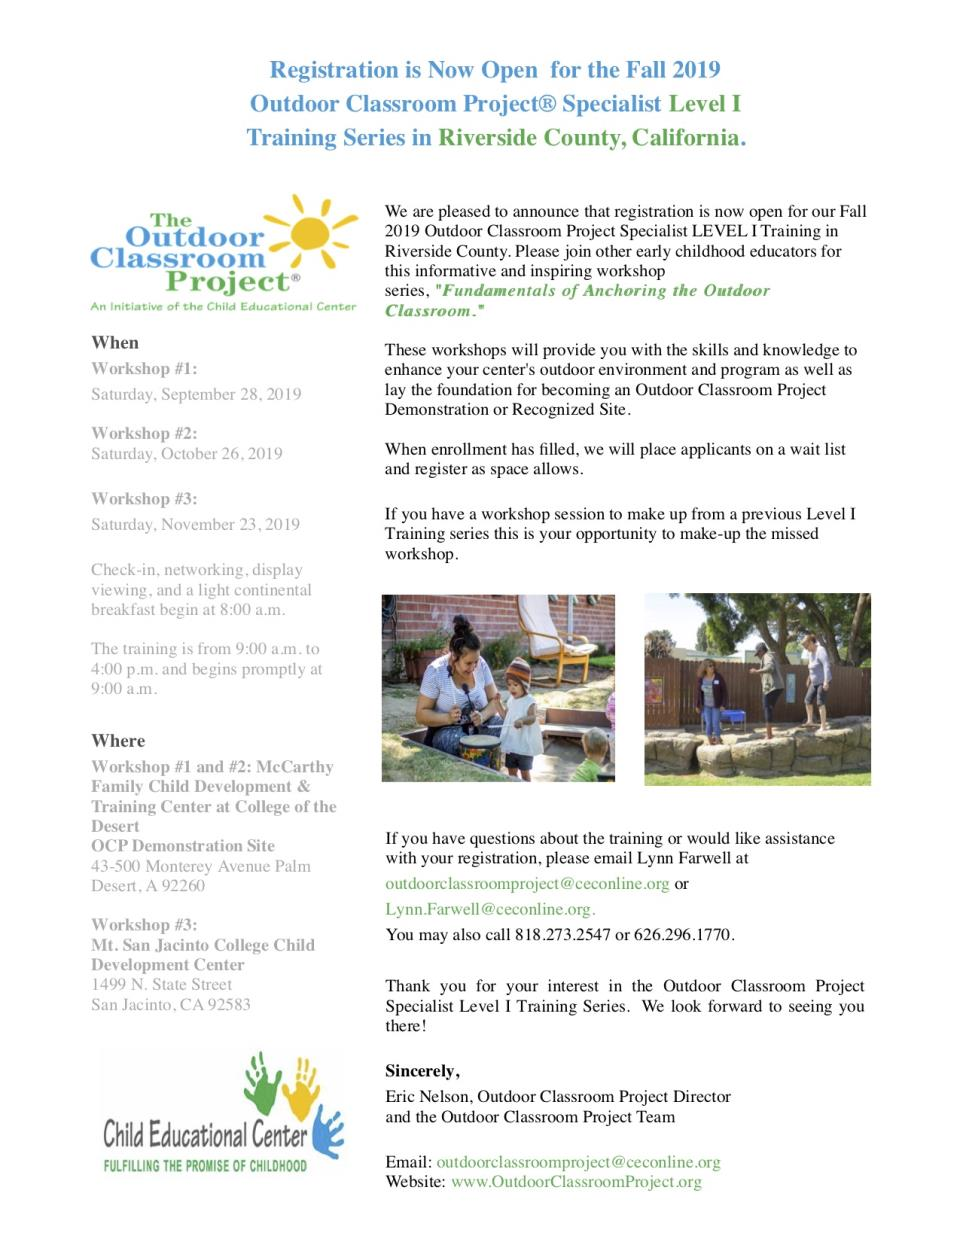 LEVEL I Outdoor Classroom Project Specialist Training Series  Fall 2019